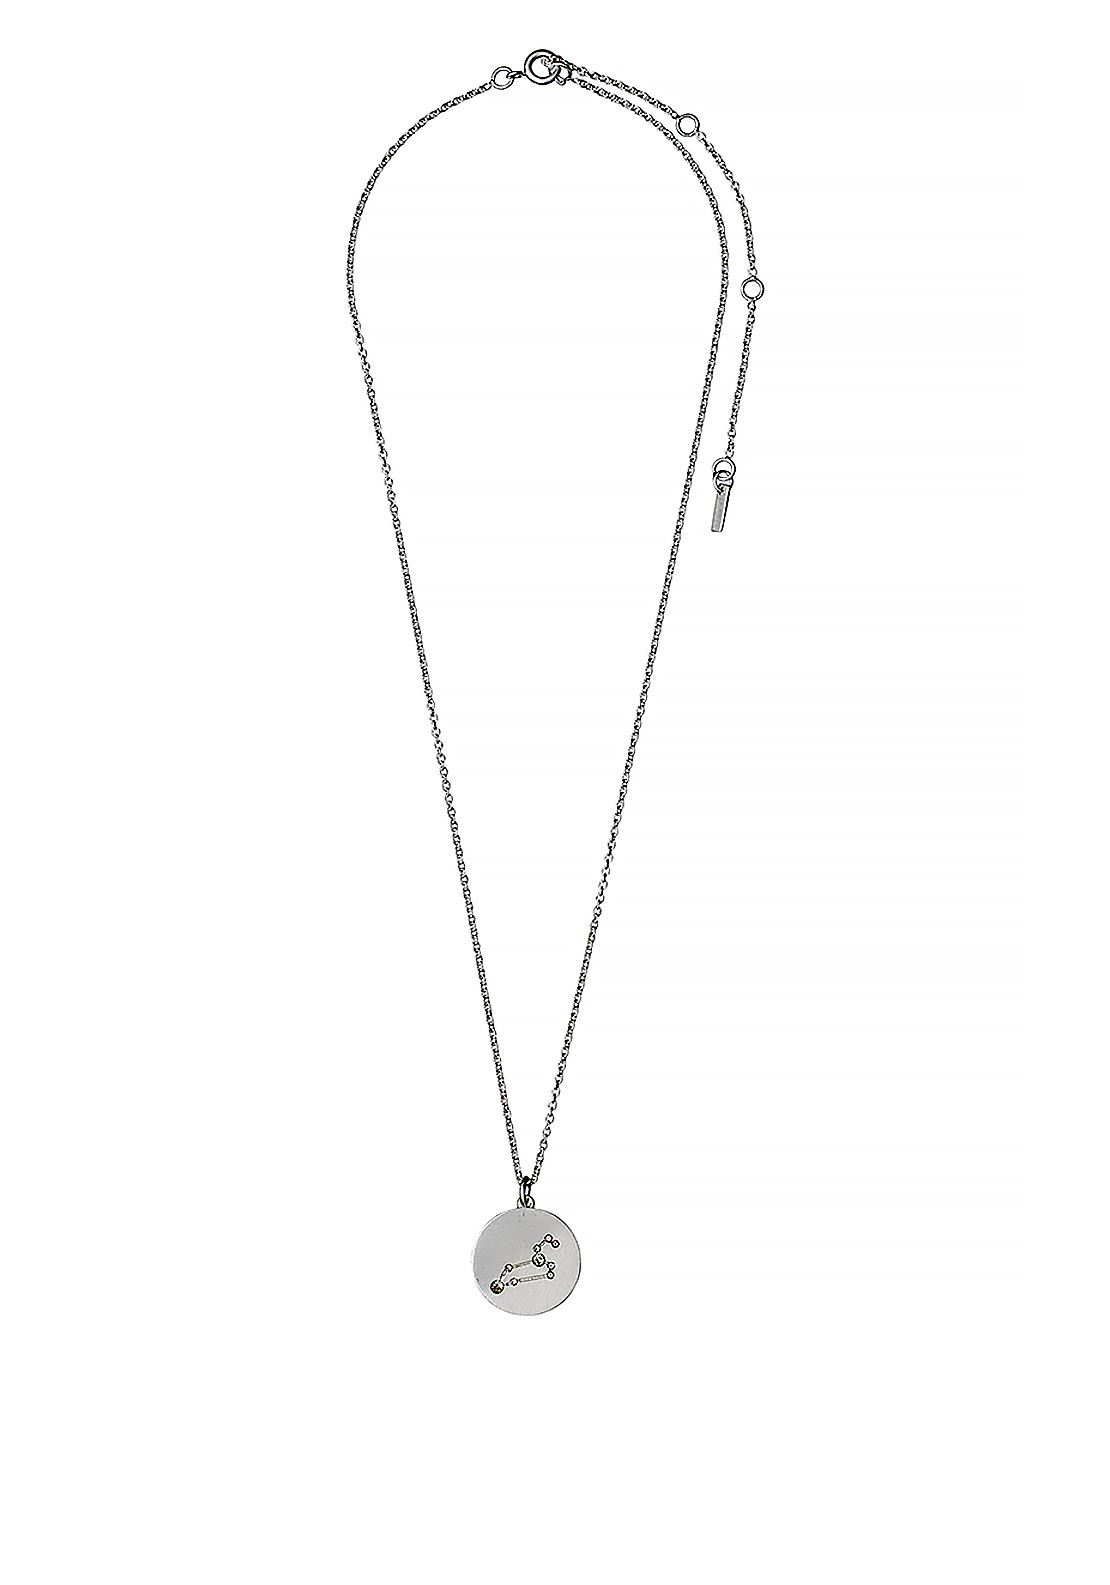 Pilgrim Leo Zodiac Sign Necklace, Silver